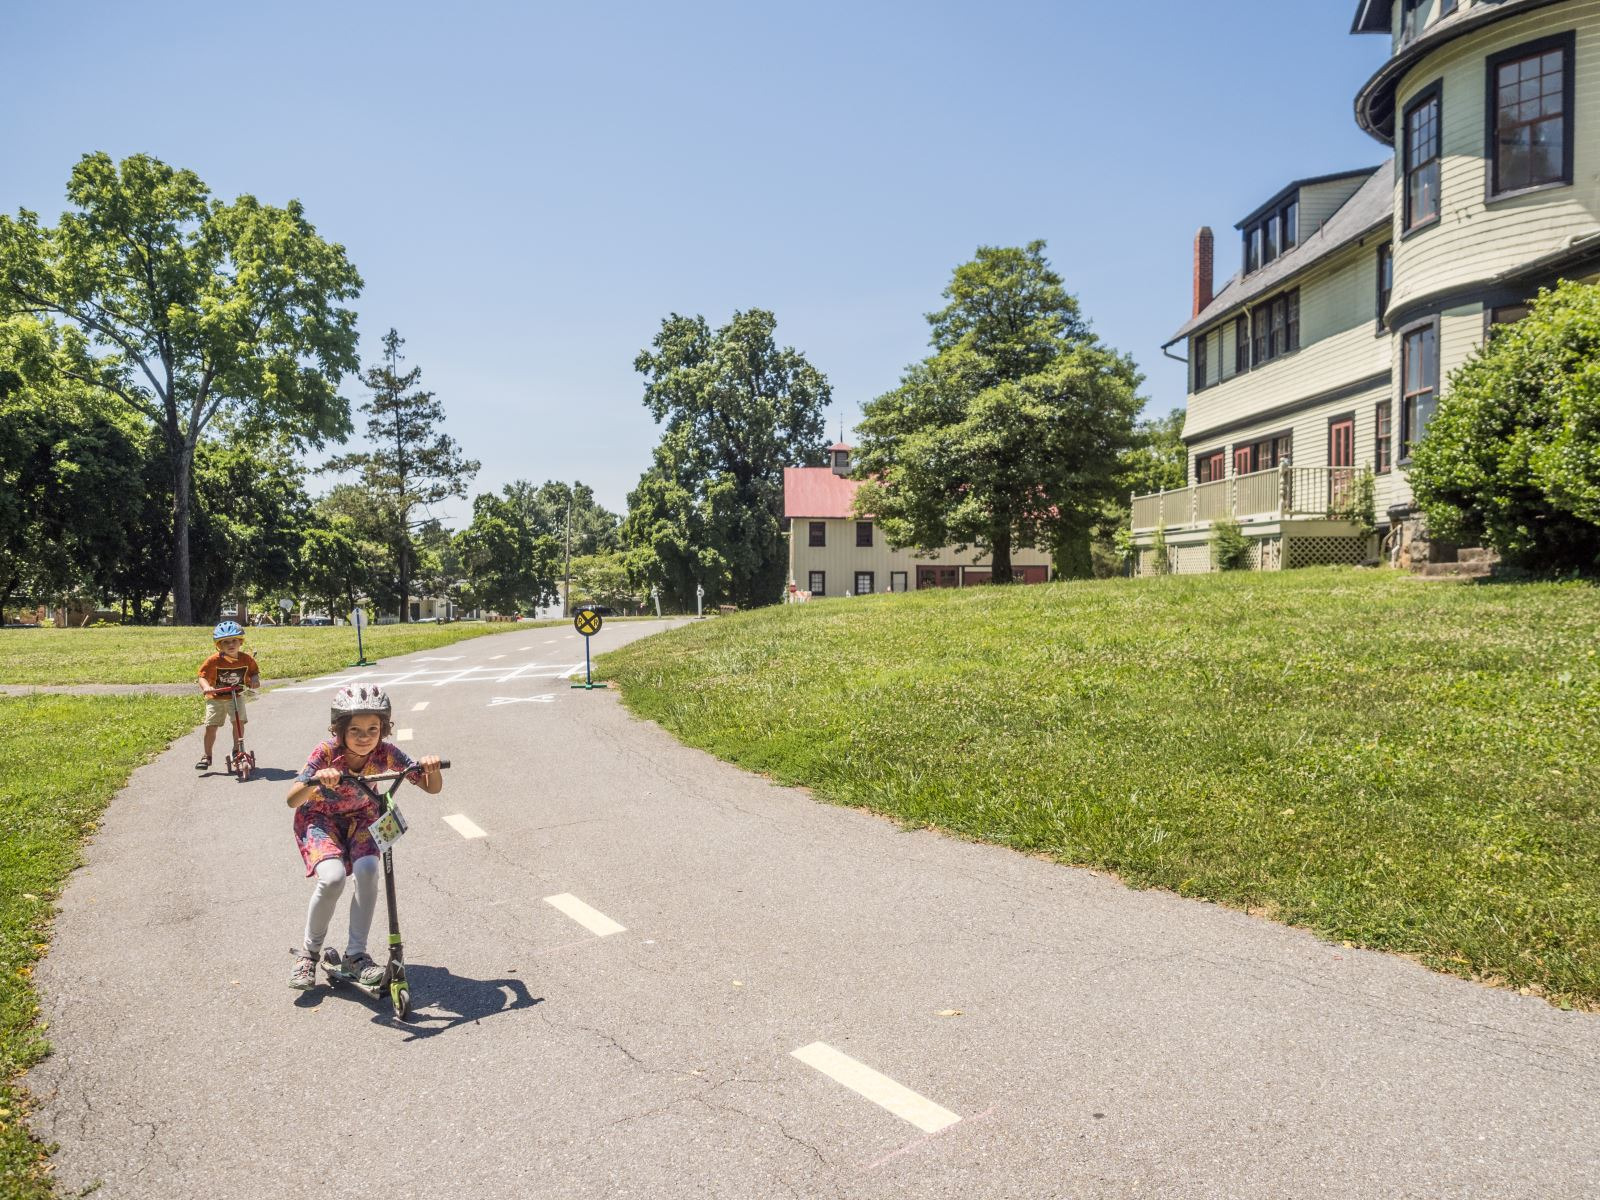 Children on scooters at the MCDOT traffic garden in Kensington